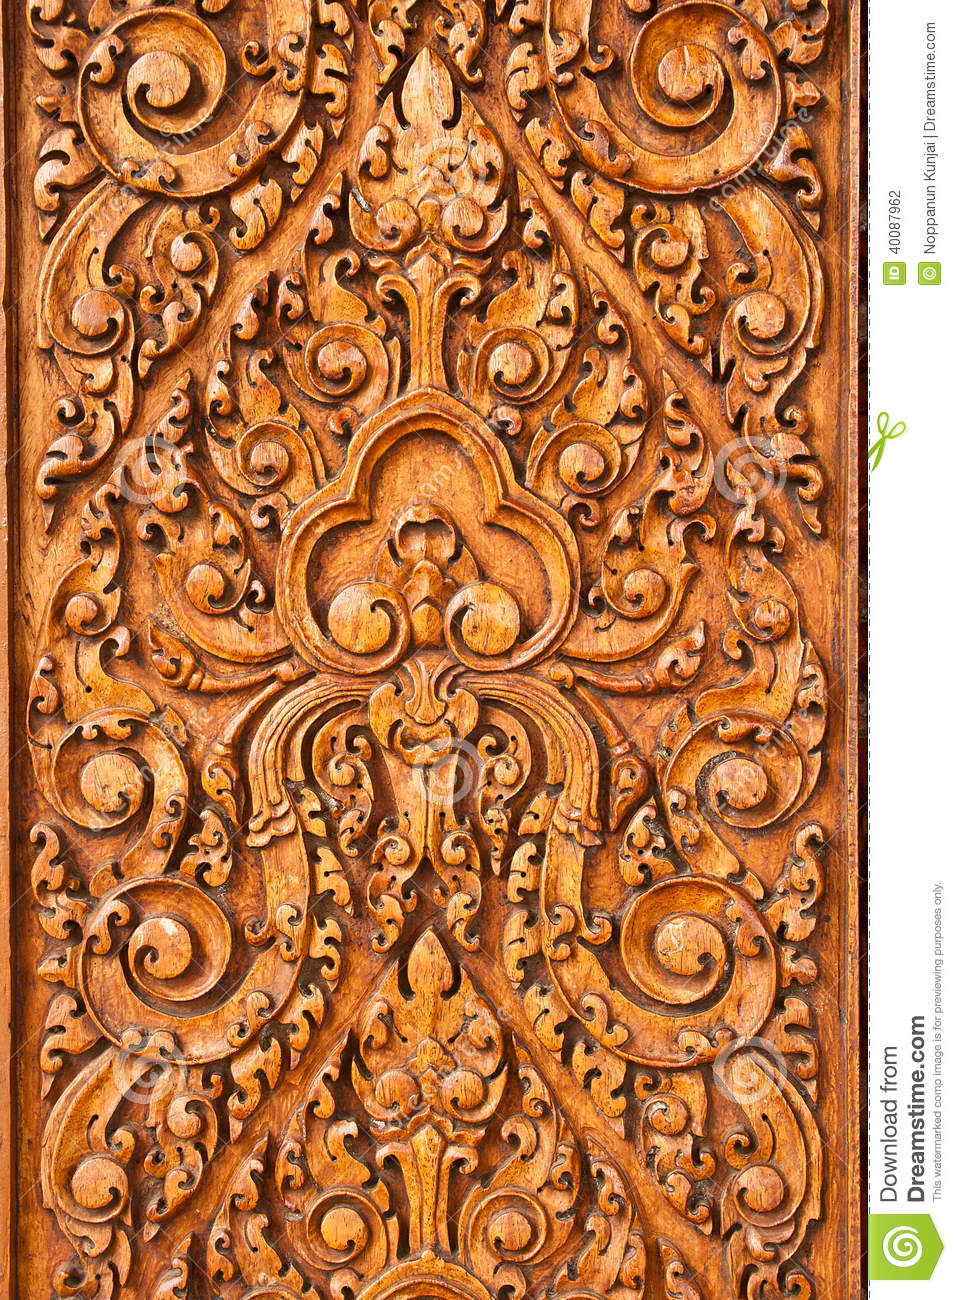 Wood Carving Stock Photo Image 40087962